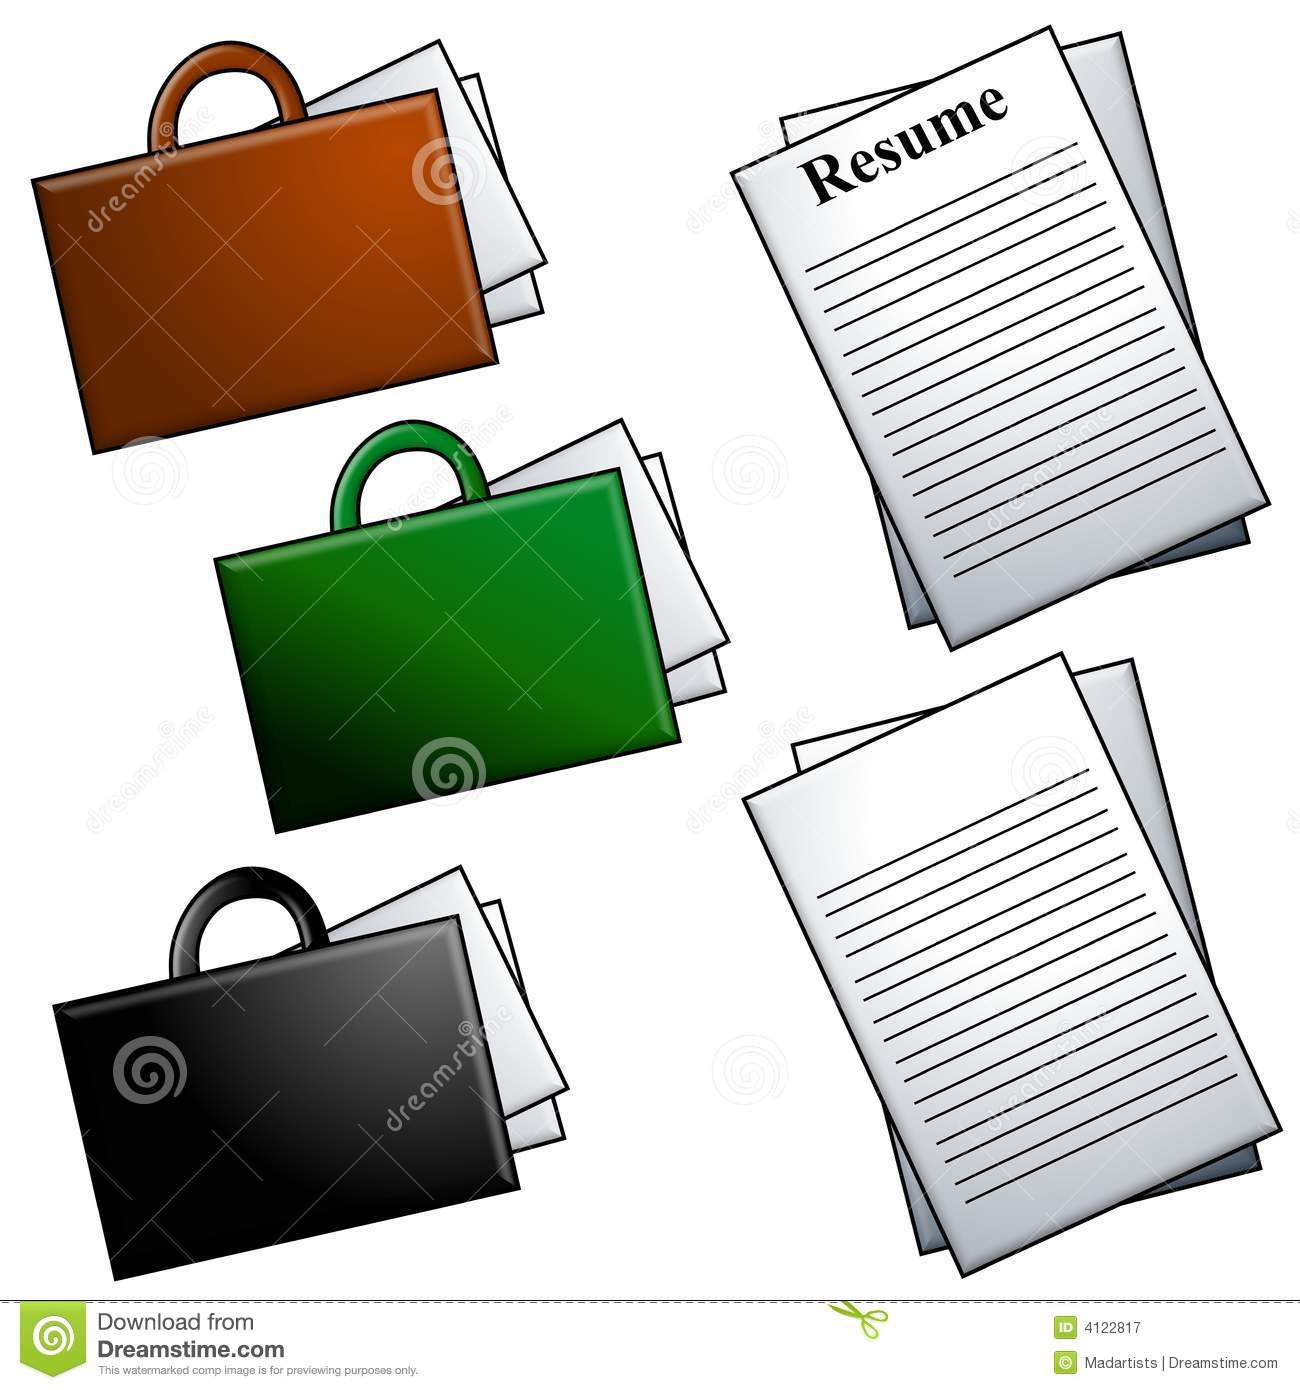 briefcases and resume clip art stock illustration